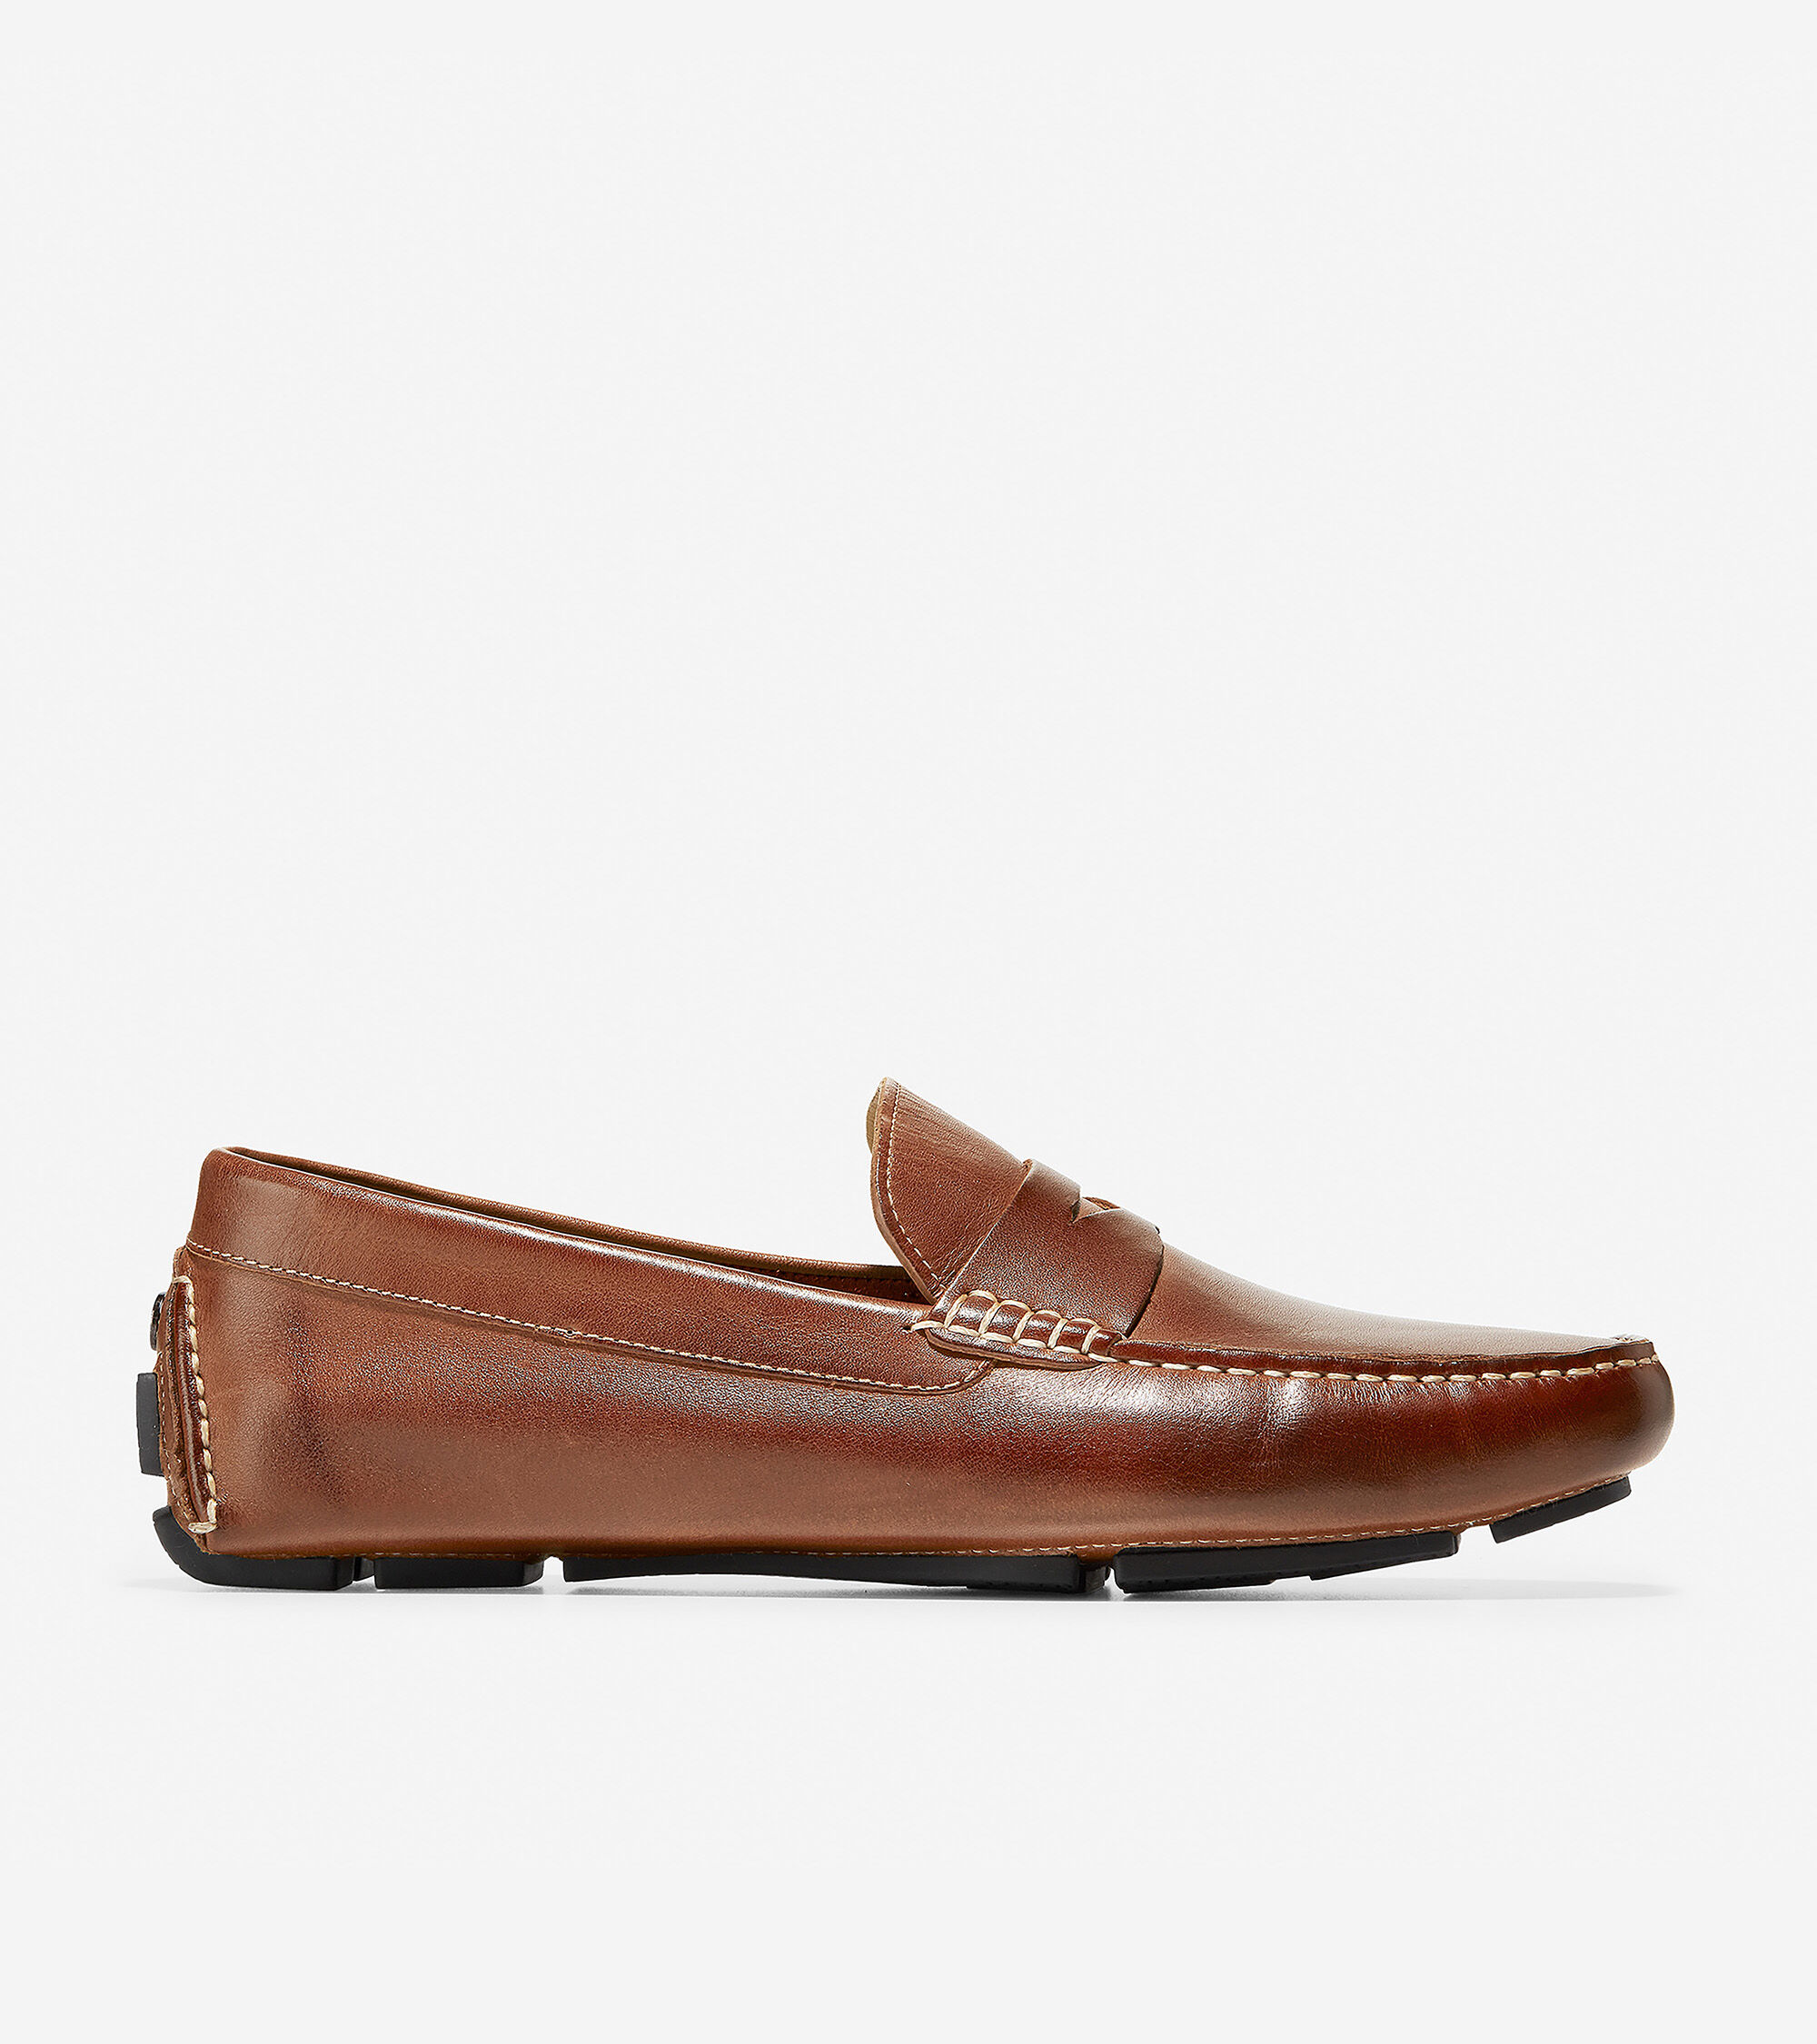 Herrenschuhe Mens Tan Smart Casual Driving Slip On Buckle Loafers